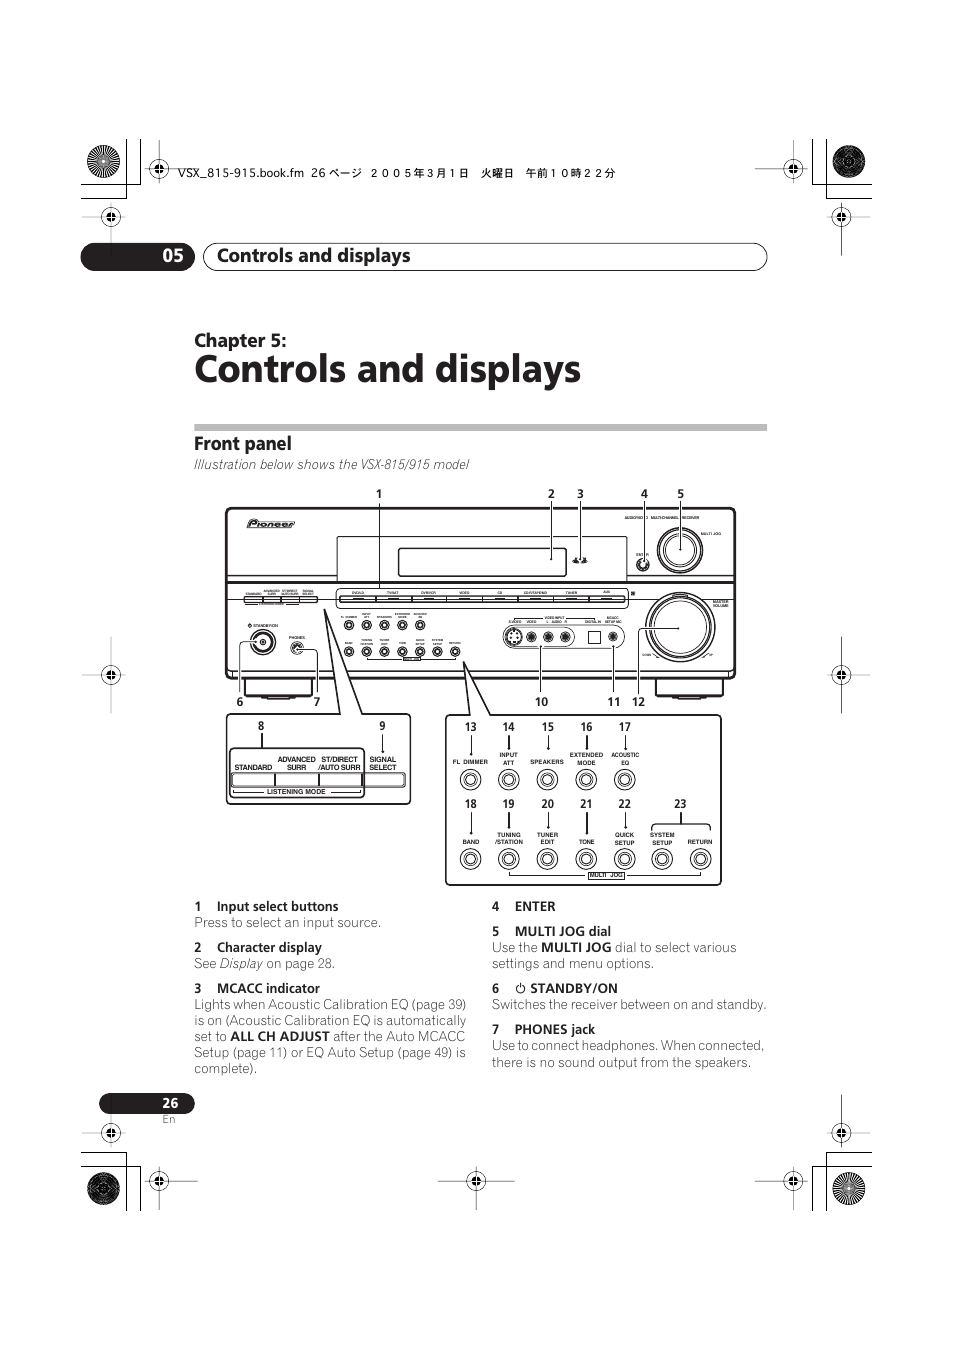 05 controls and displays, Front panel, Controls and